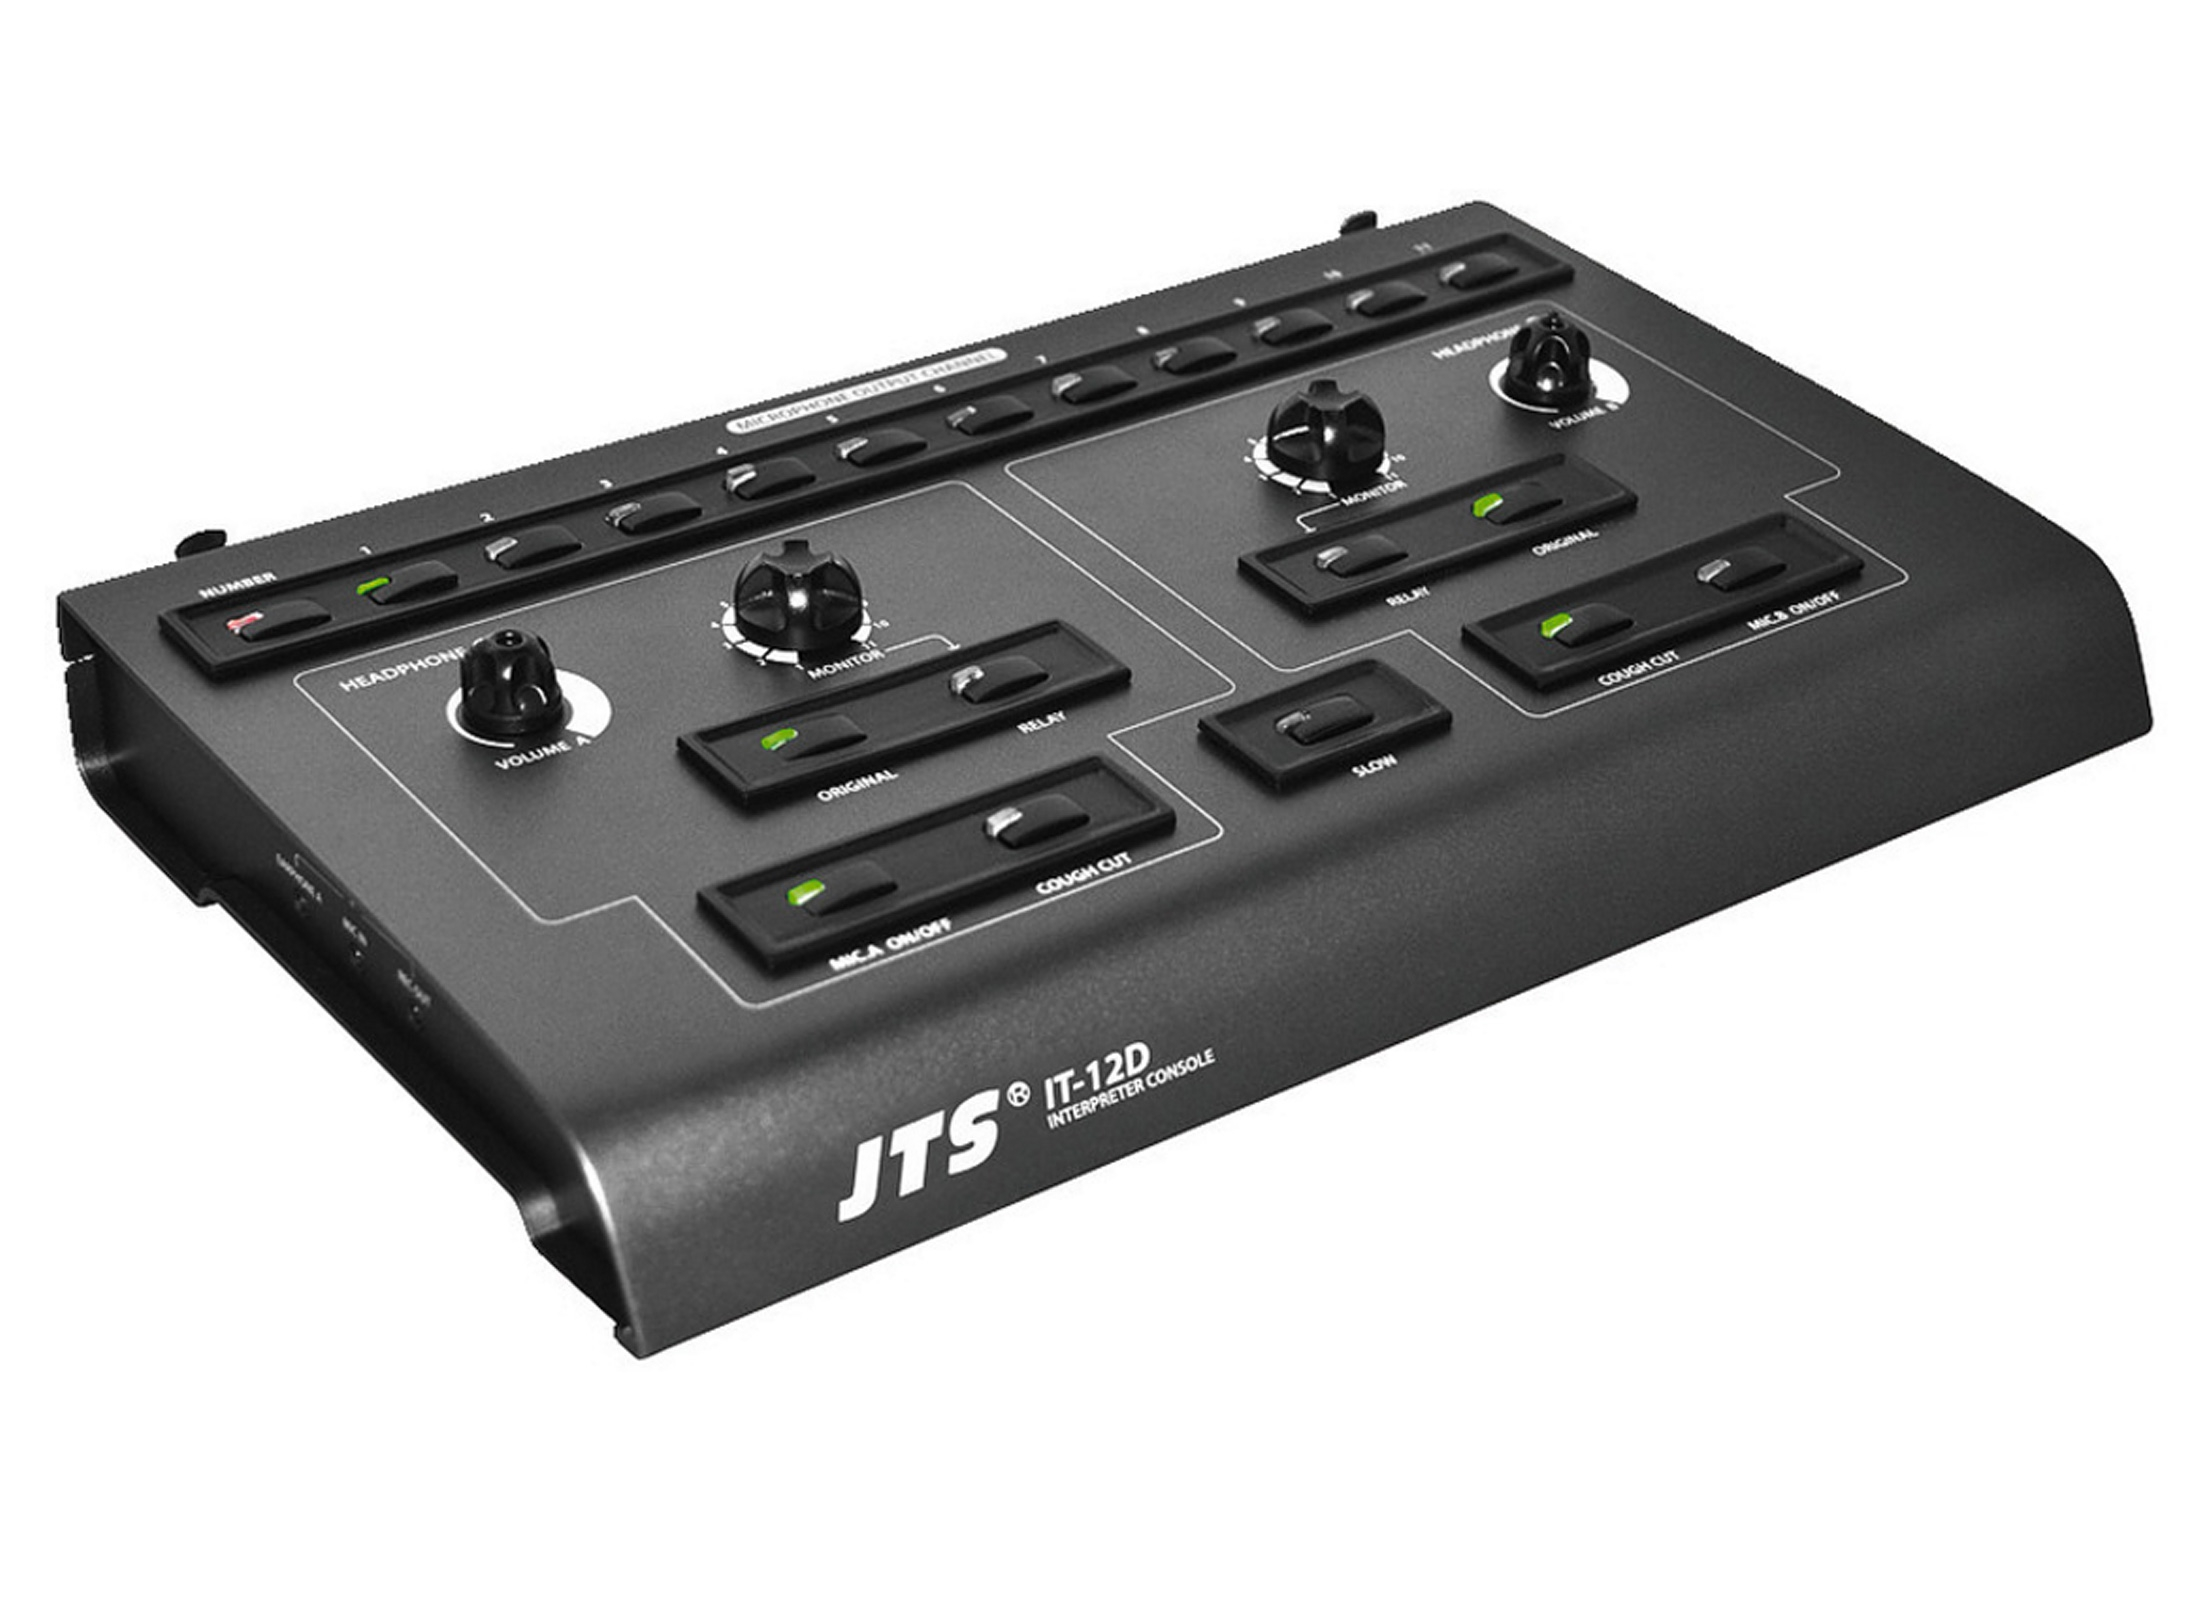 JTS IT-12D Interpreter Double Desk Online At Low Prices At Huss ...